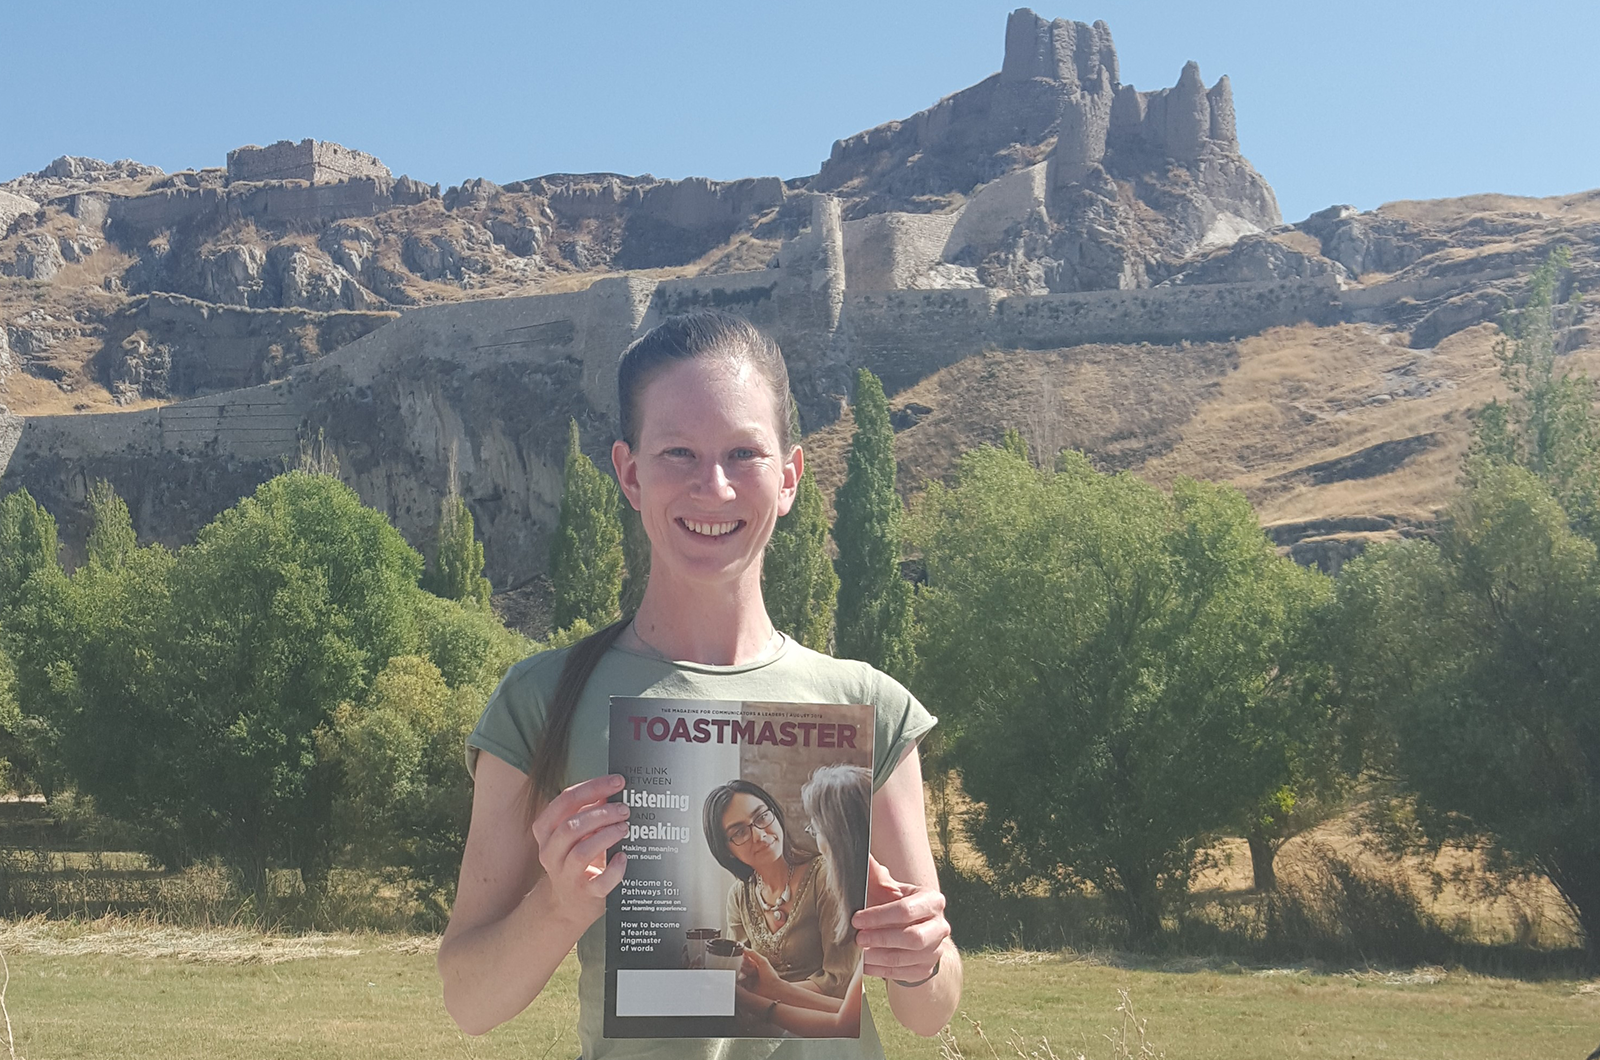 Alyssa Dunn of Stanthorpe, Queensland, Australia, visits the Van Fortress in Eastern Anatolia, Turkey. The fortress is a stone fortification built during the 9th to 7th centuries B.C.